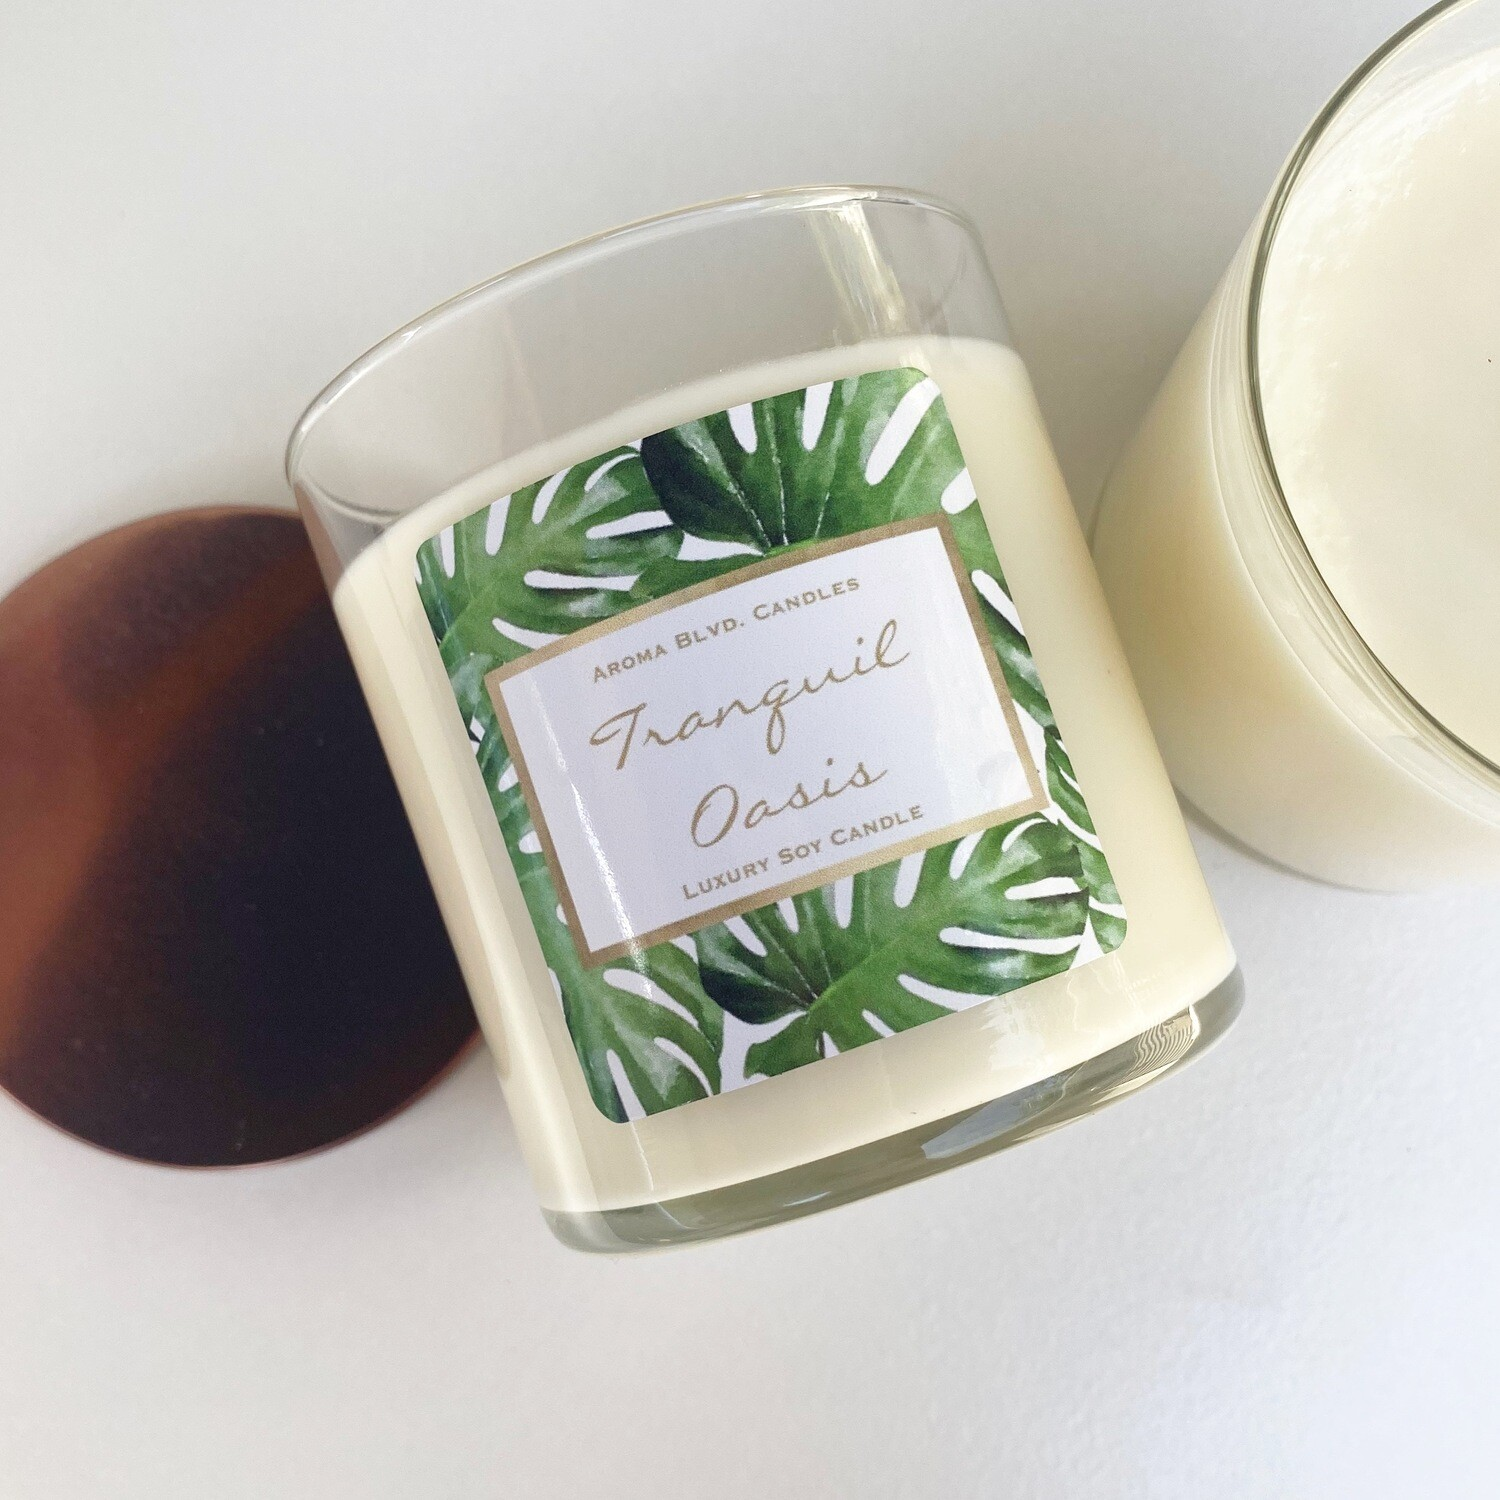 Tranquil Oasis Scented Soy Candle